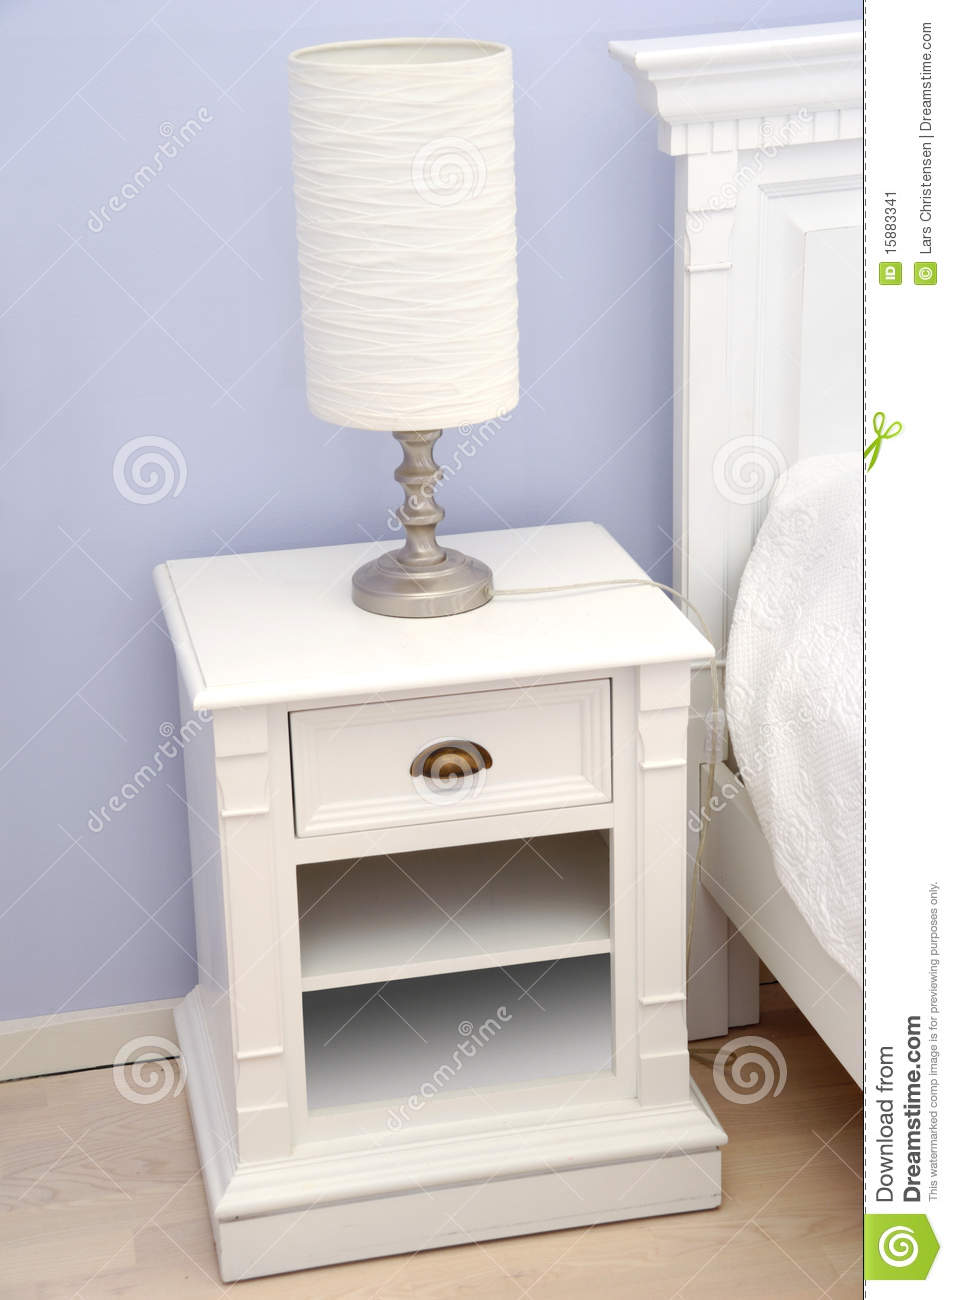 Table de chevet avec la lampe image stock image 15883341 - Lampe table de nuit ...